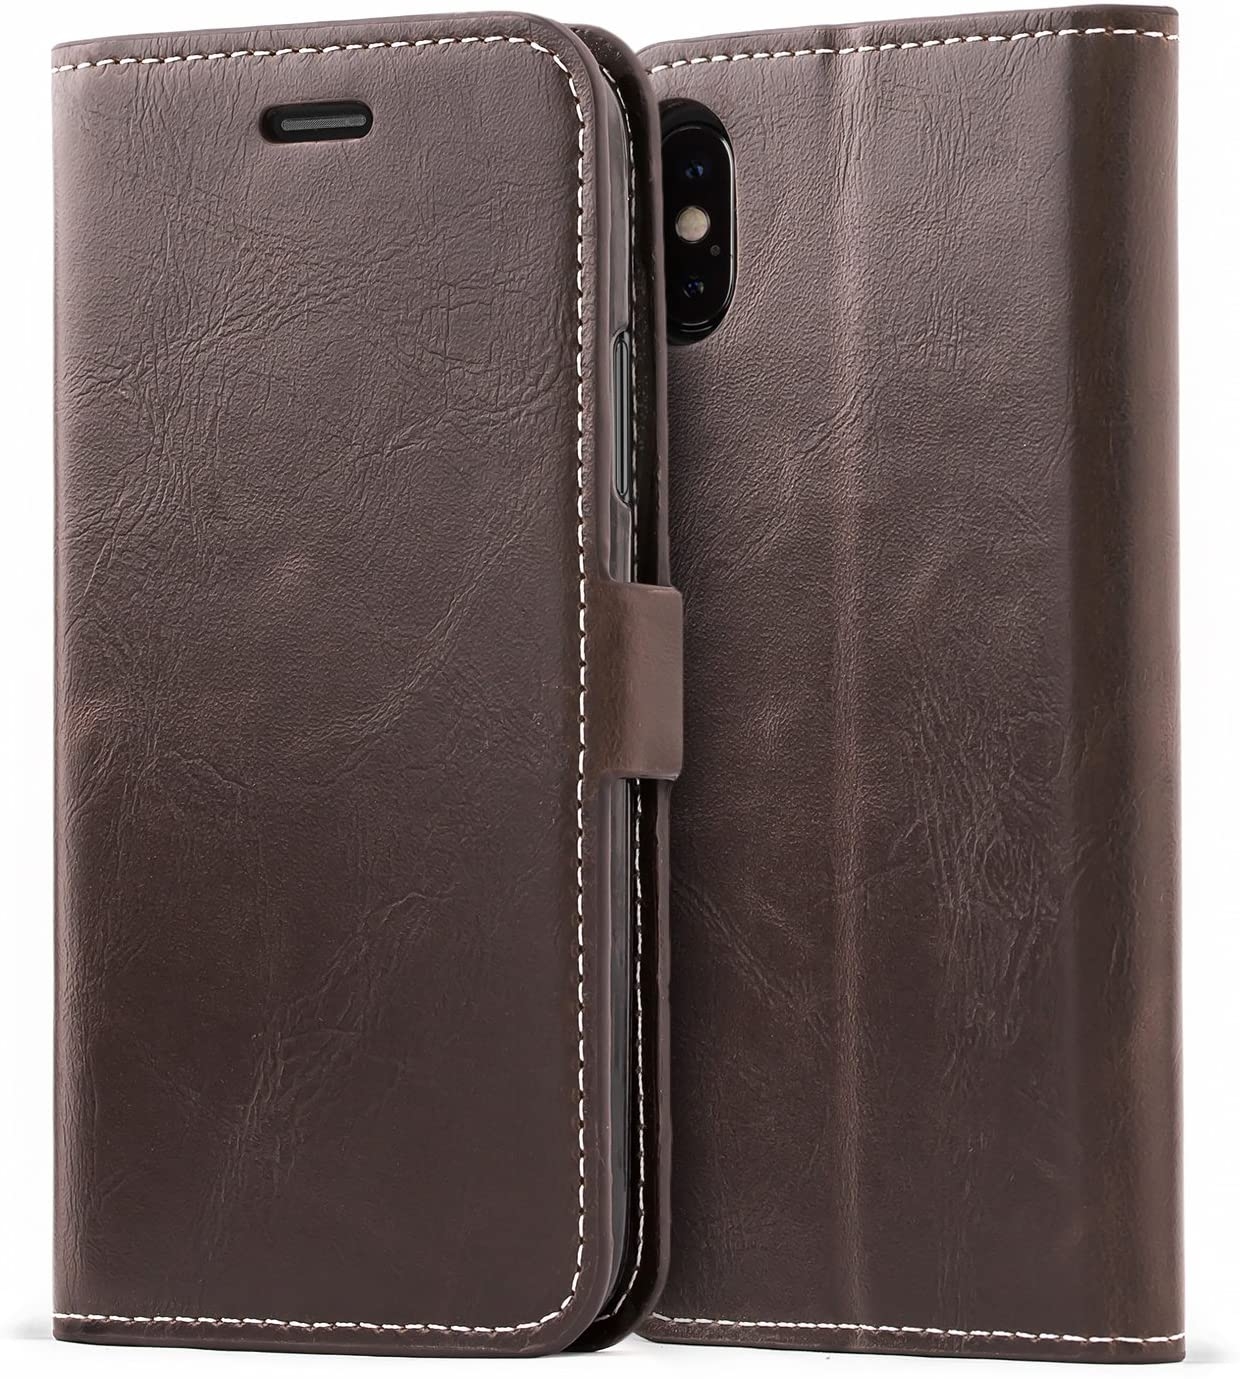 Mulbess iPhone Xs Wallet Case, Flip Leather Phone Case with Kickstand and Card Holder for iPhone Xs/X Cover, Coffee Brown